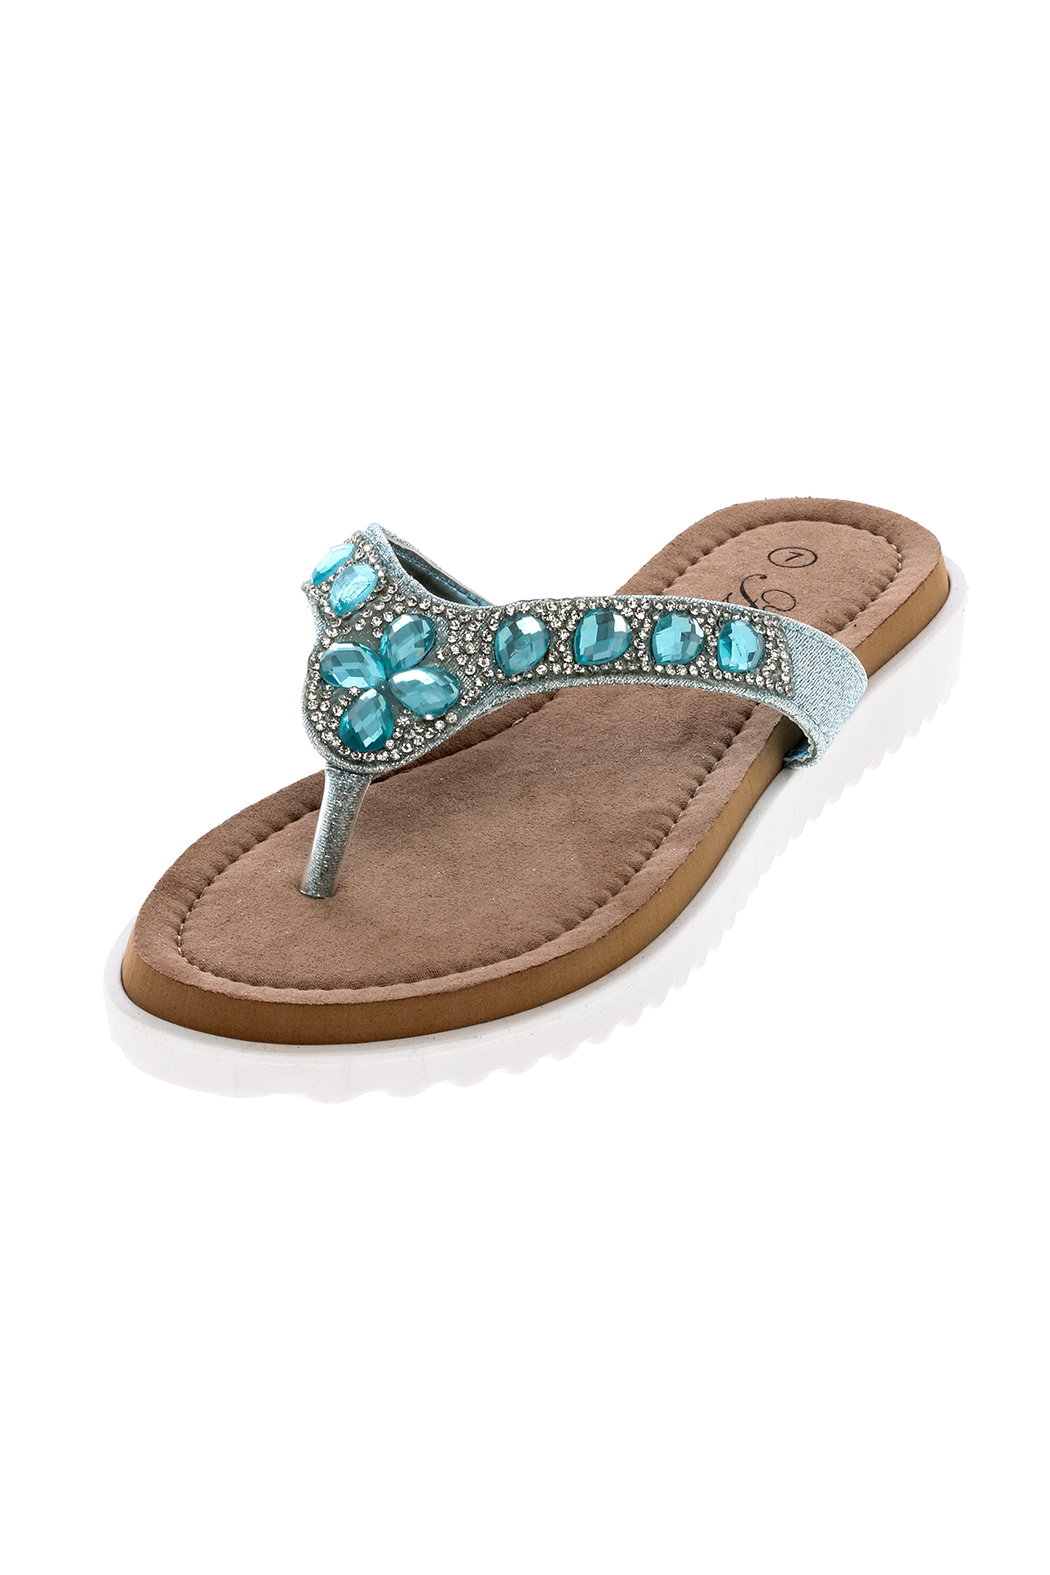 2cb5db8f3 Atrevida Turquoise Jeweled Sandal from Iowa by Elegance Boutique ...